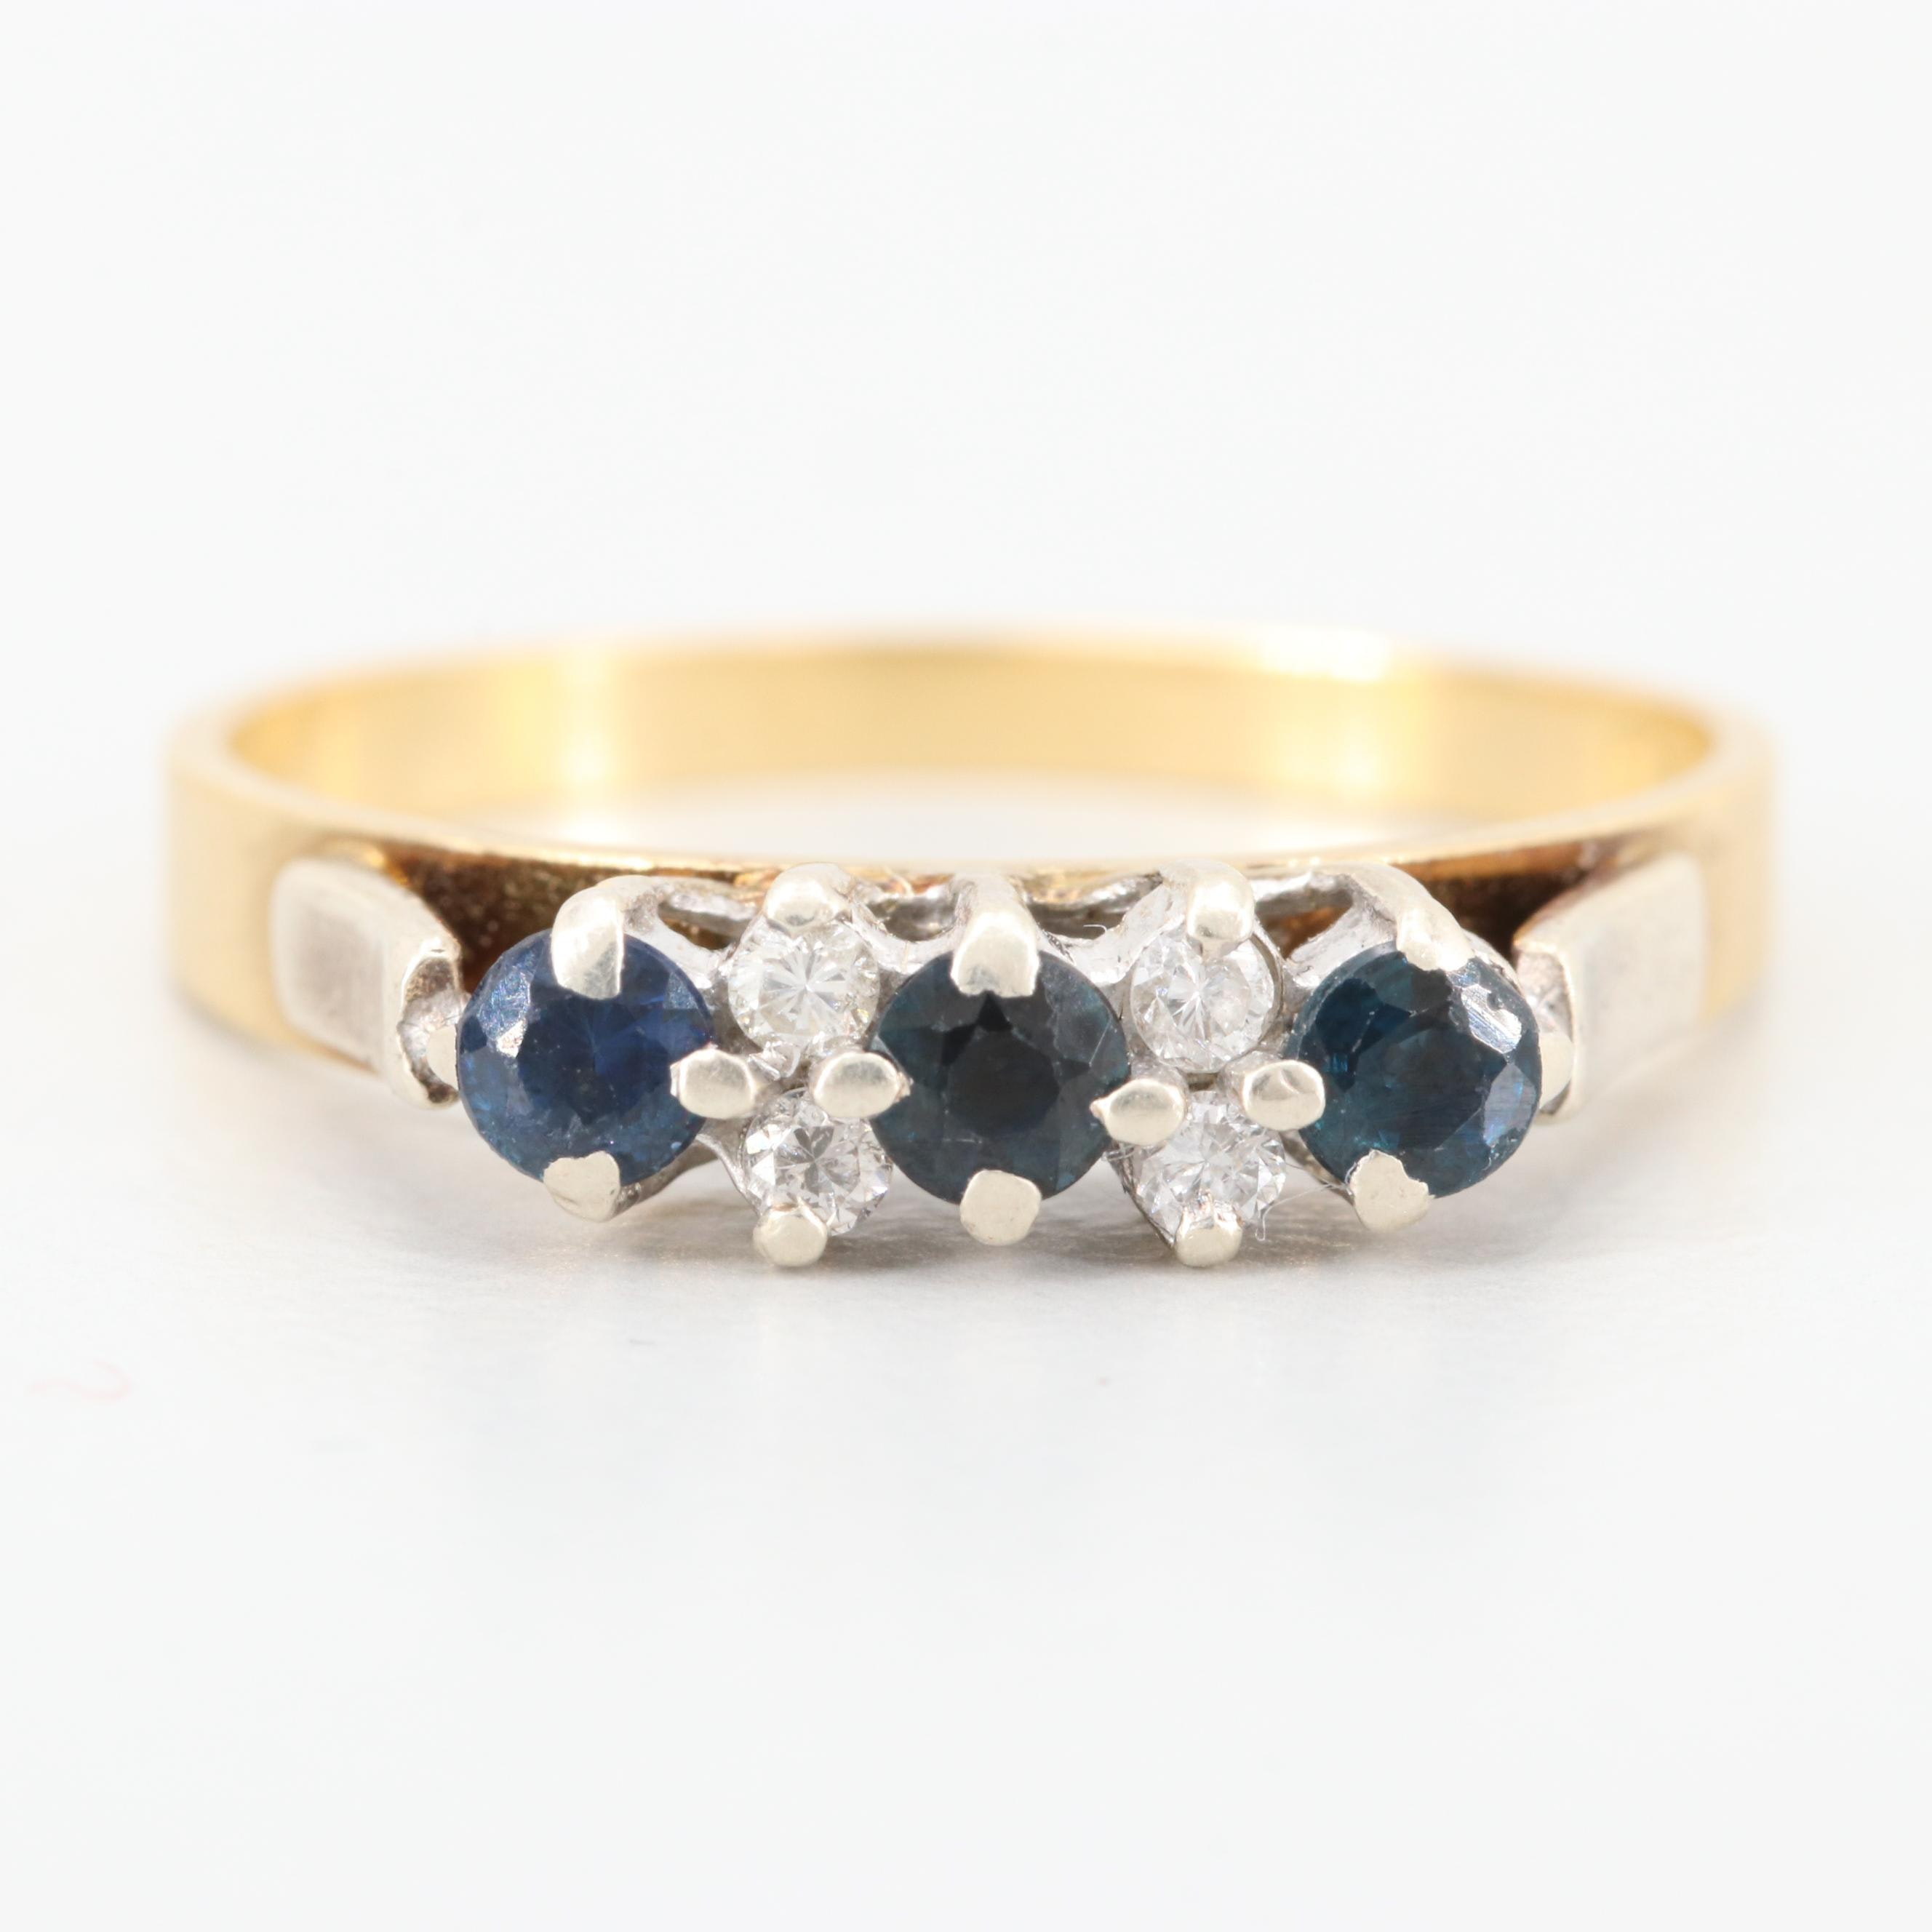 18K Yellow Gold Sapphire and Diamond Ring with 10K White Gold Accents